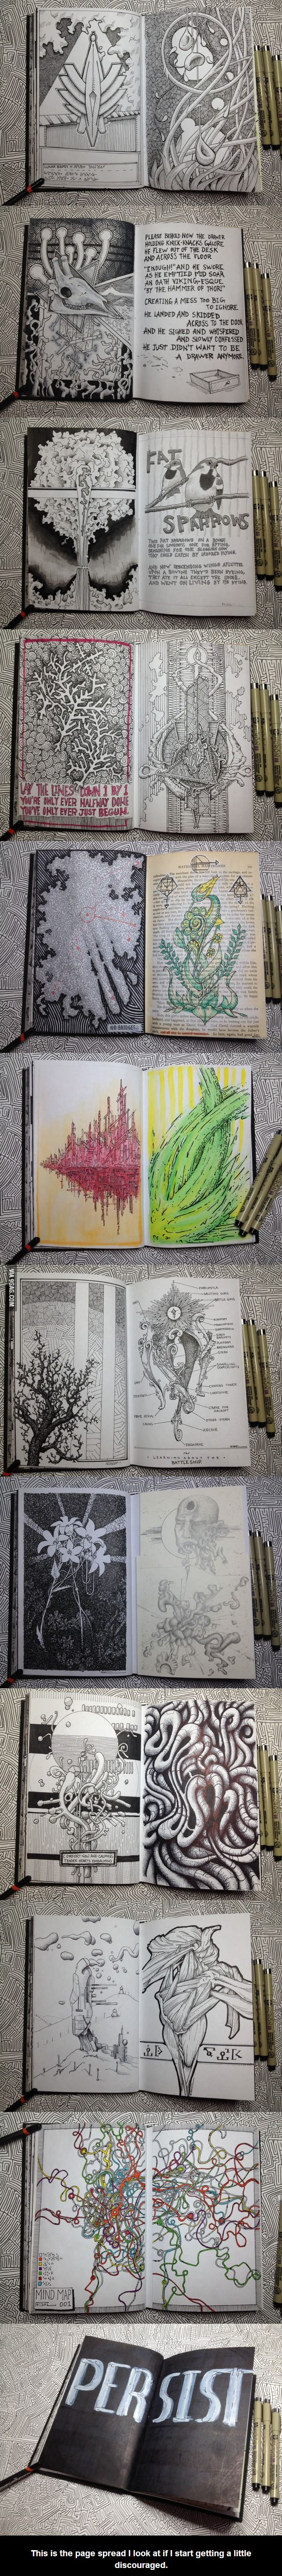 Awesome sketchbook!